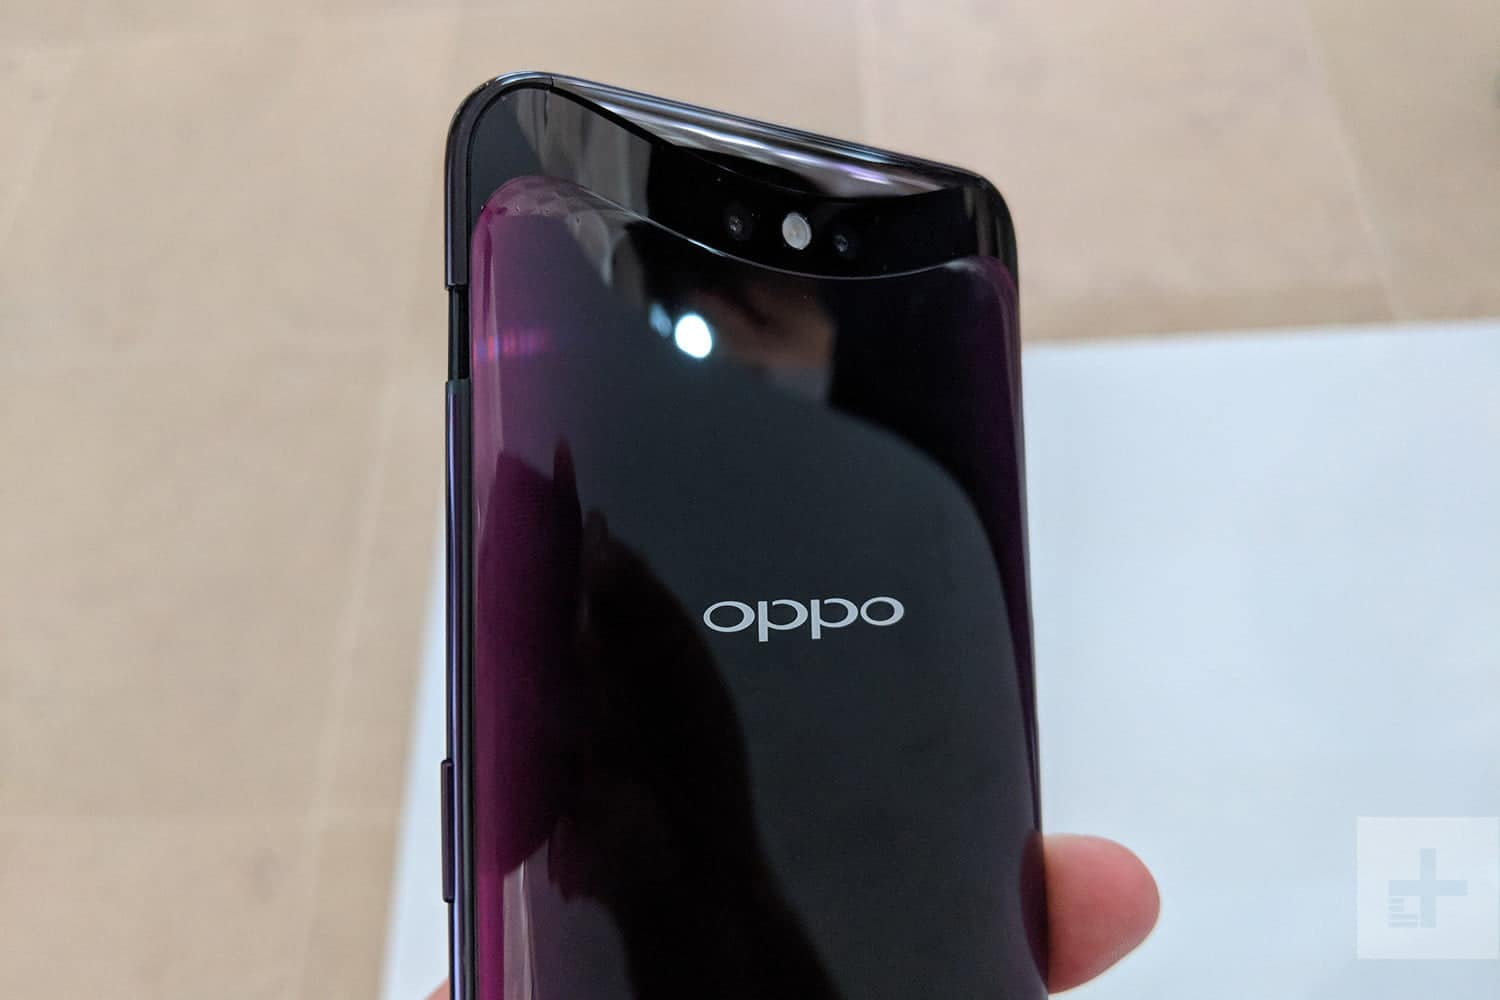 Oppo's New Find X Would be the first 10GB RAM smartphone?